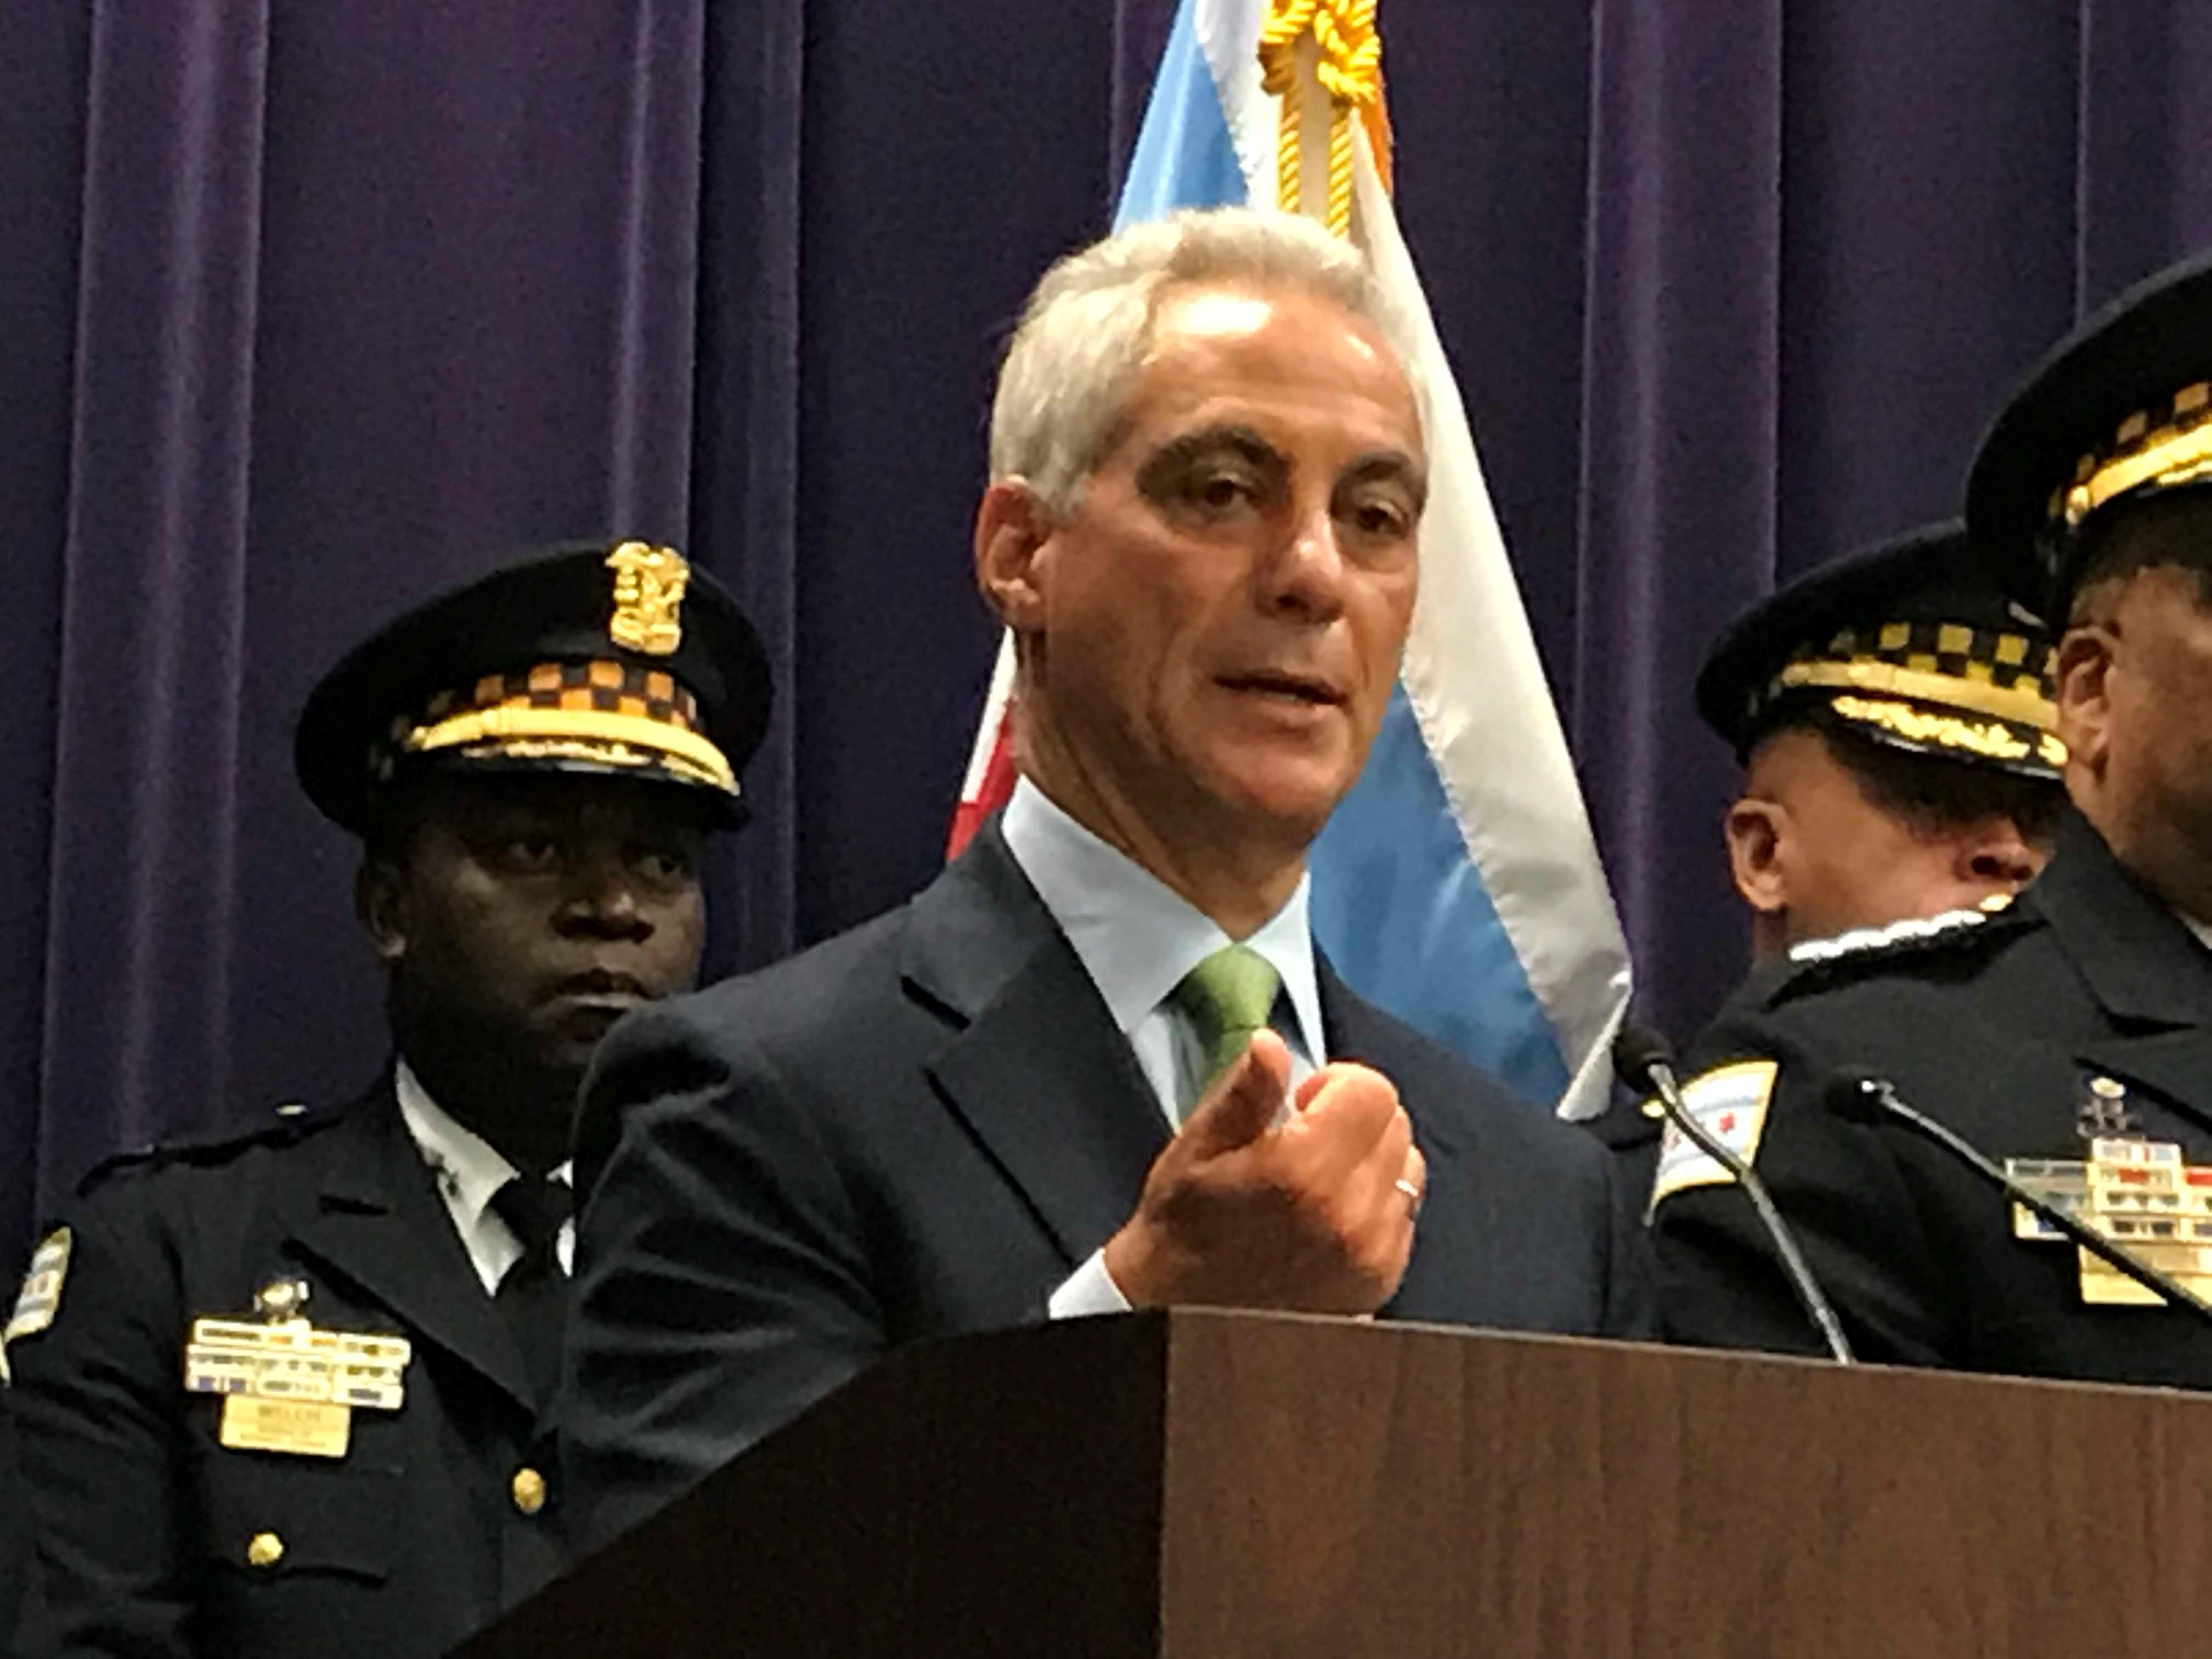 Police shooting: Emanuel not taking a position